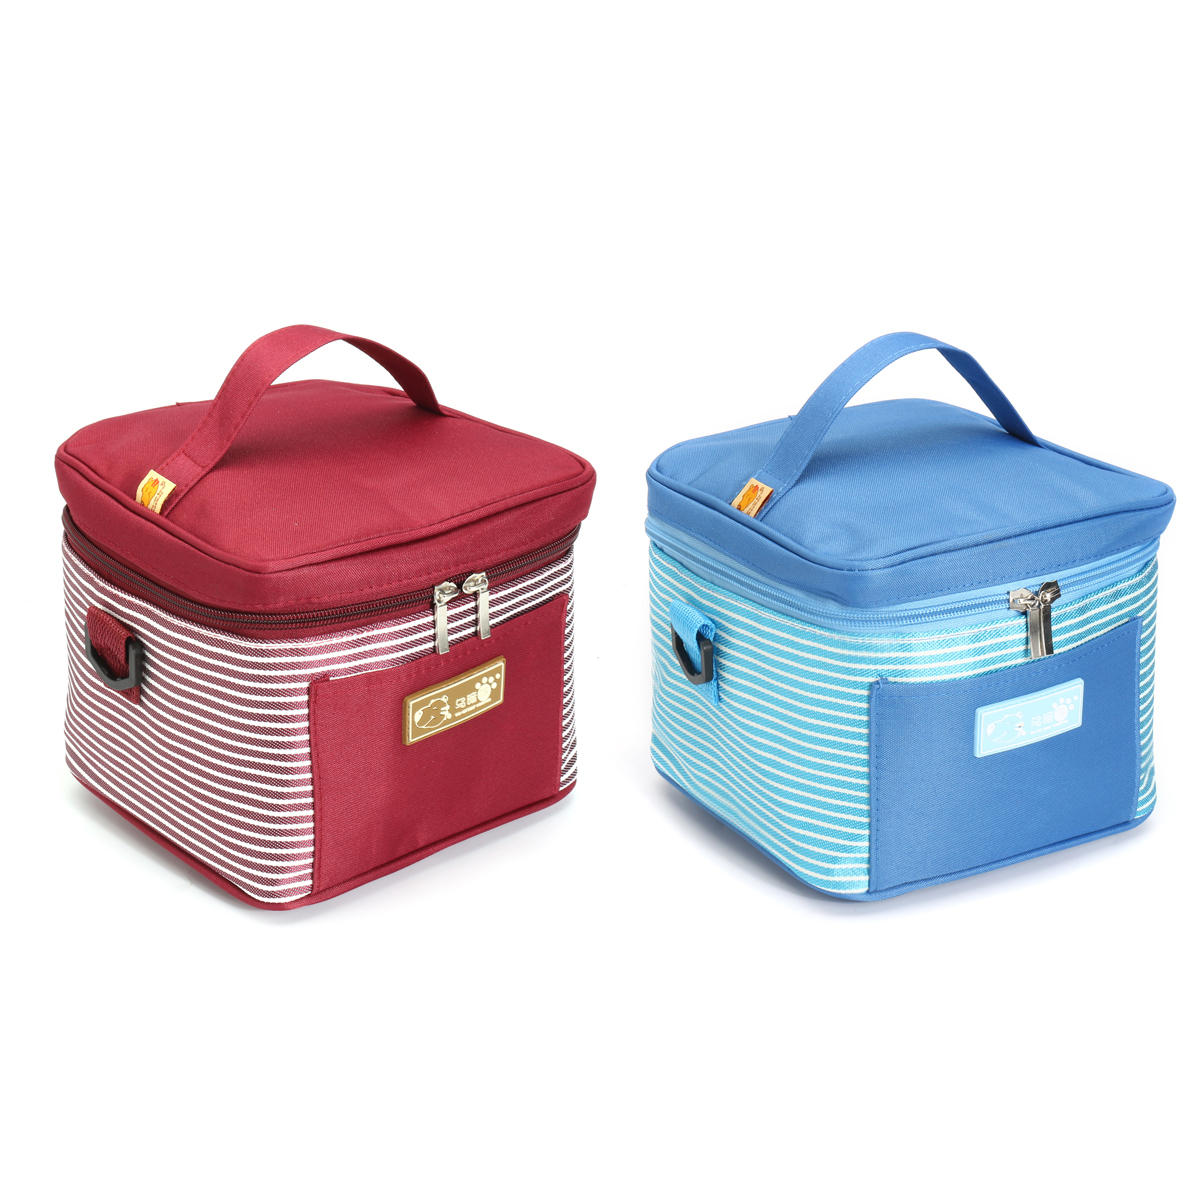 IPRee Portable Travel Insulated Thermal Cooler Lunch Box Carry Tote Picnic Storage Bag